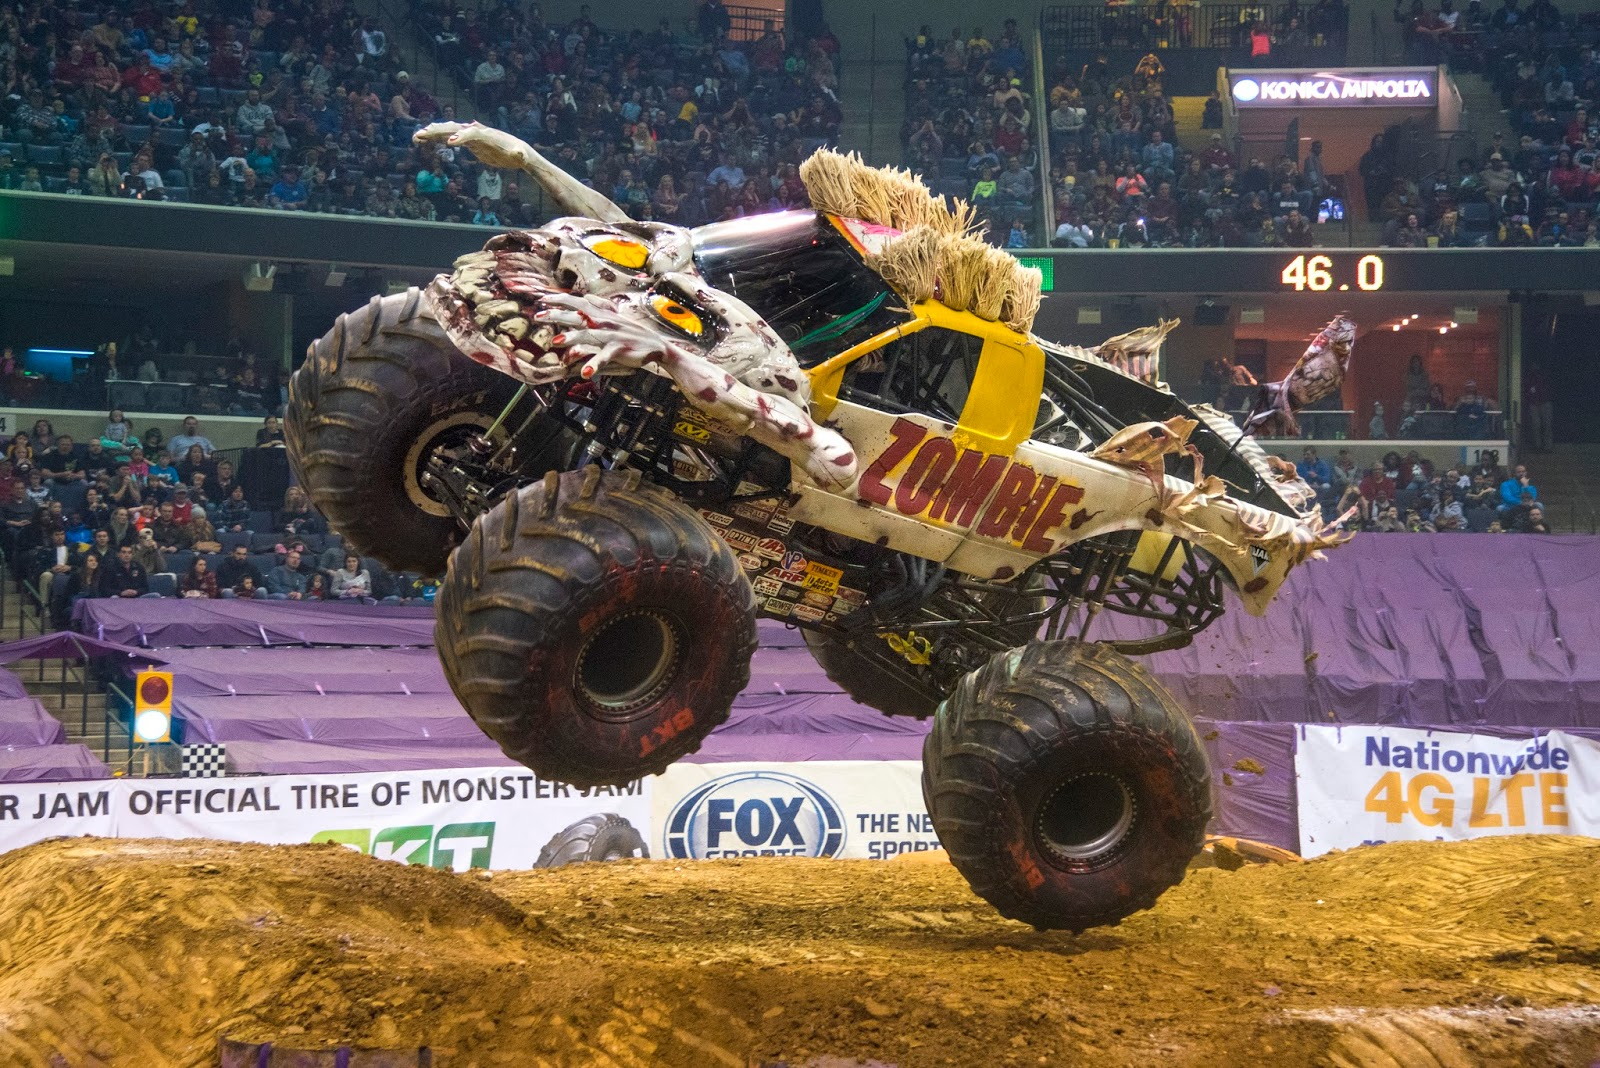 Chiil Mama Flash Giveaway Win 4 Tickets To Monster Jam